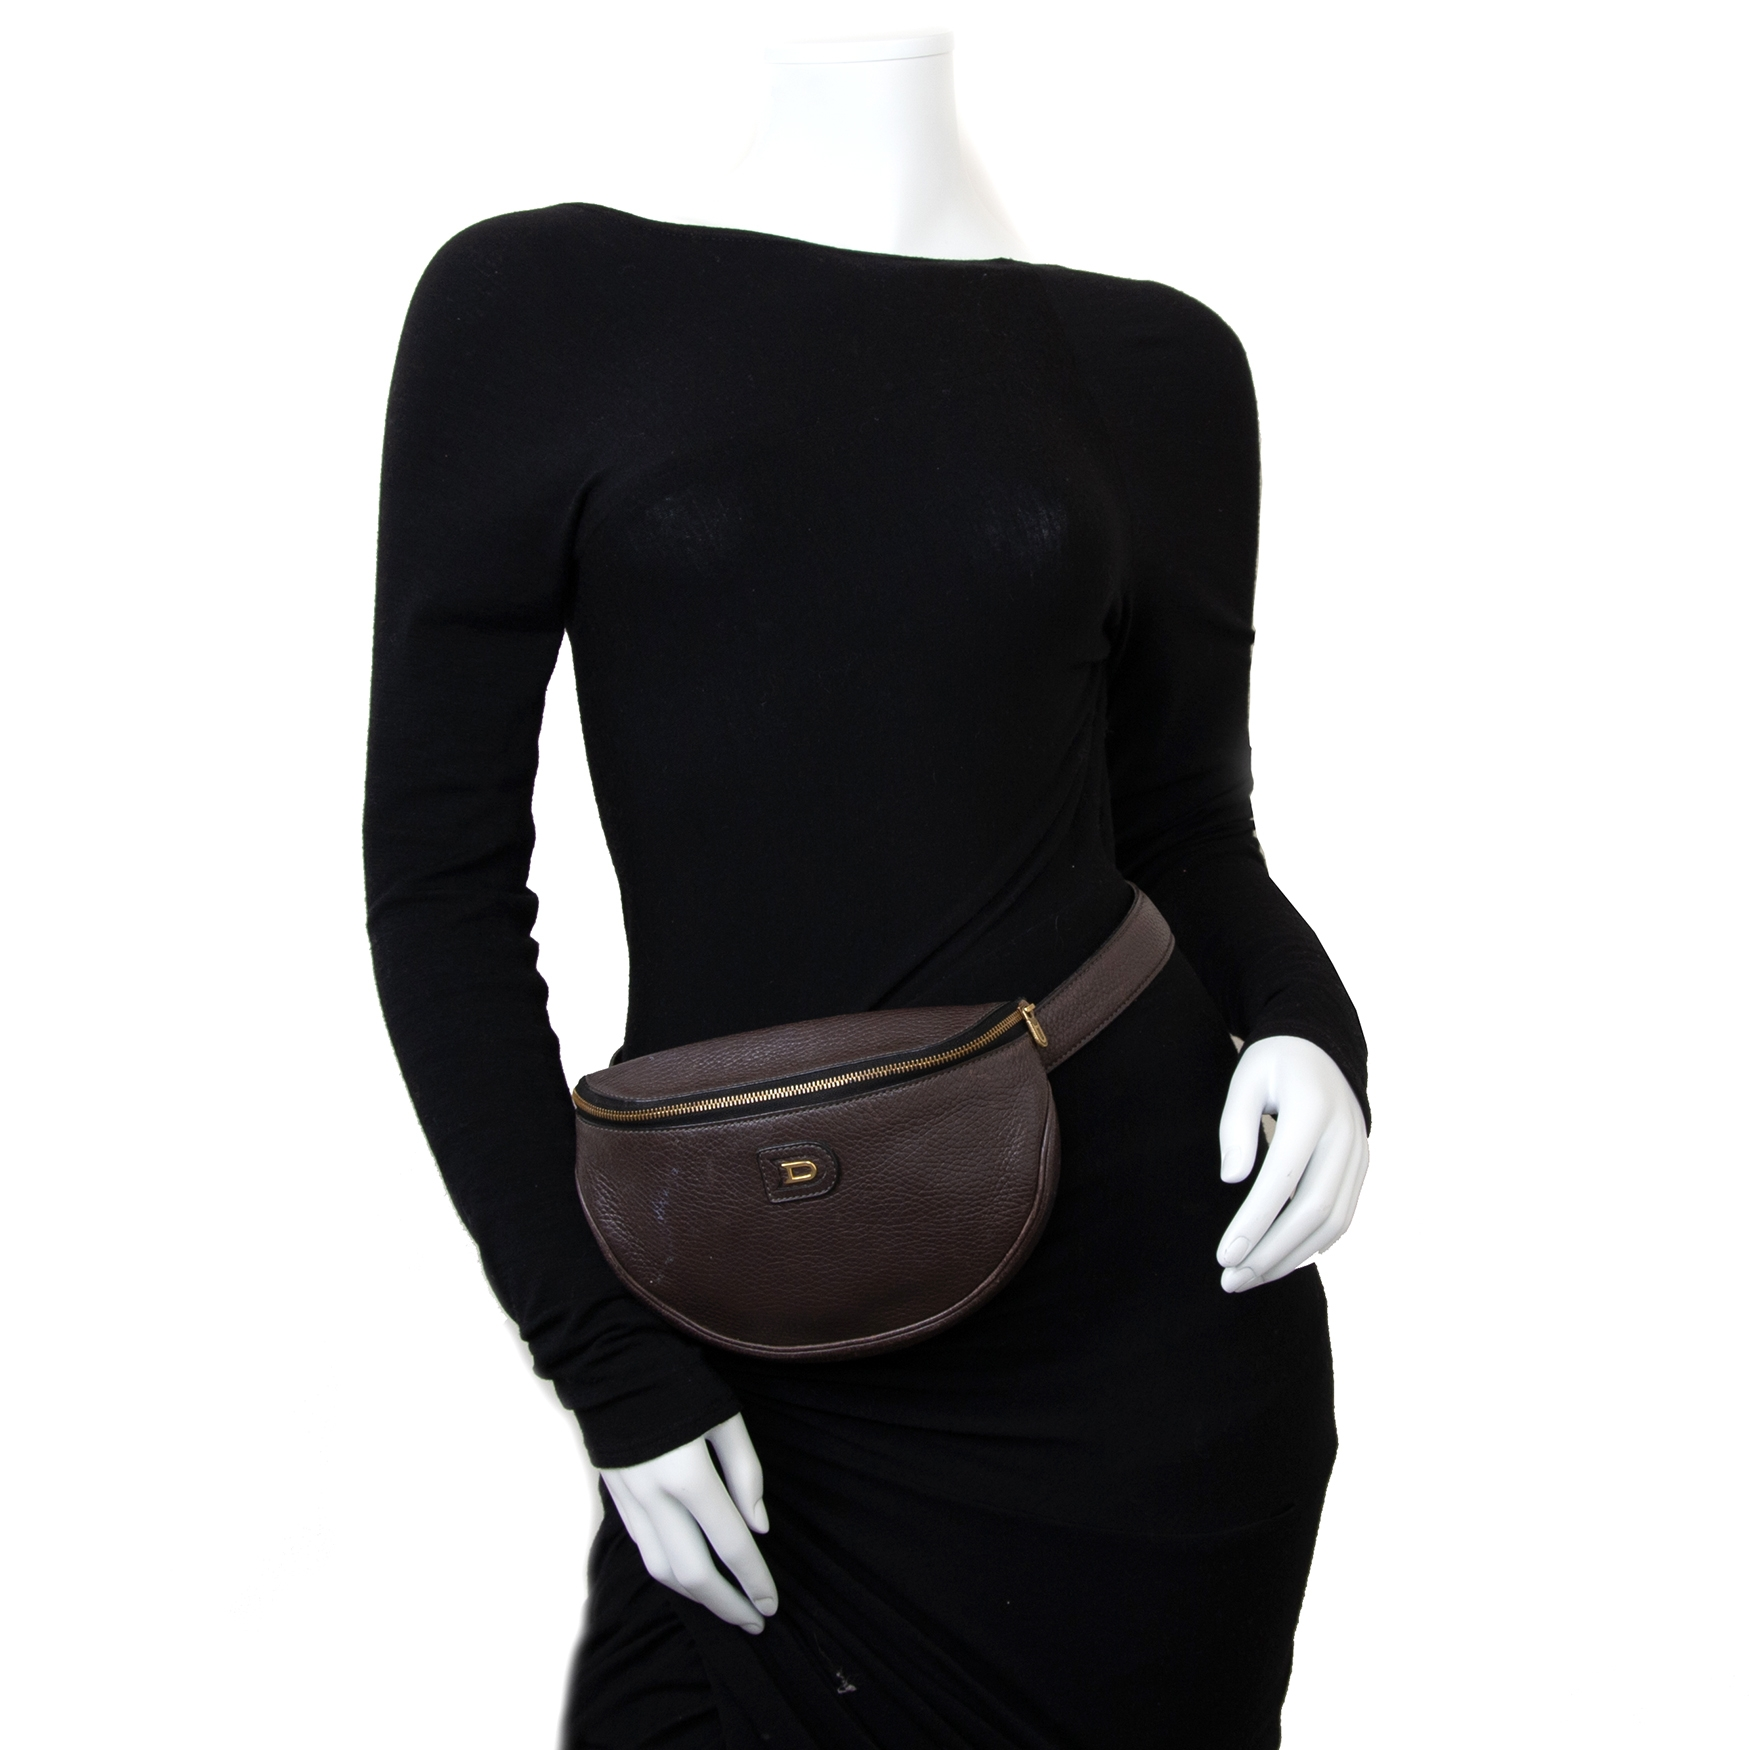 e6f7e495a4ac65 ... Achetez secur en ligne votre sac a mains Brown Leather Belt Bag chez  Labellov à Anvers